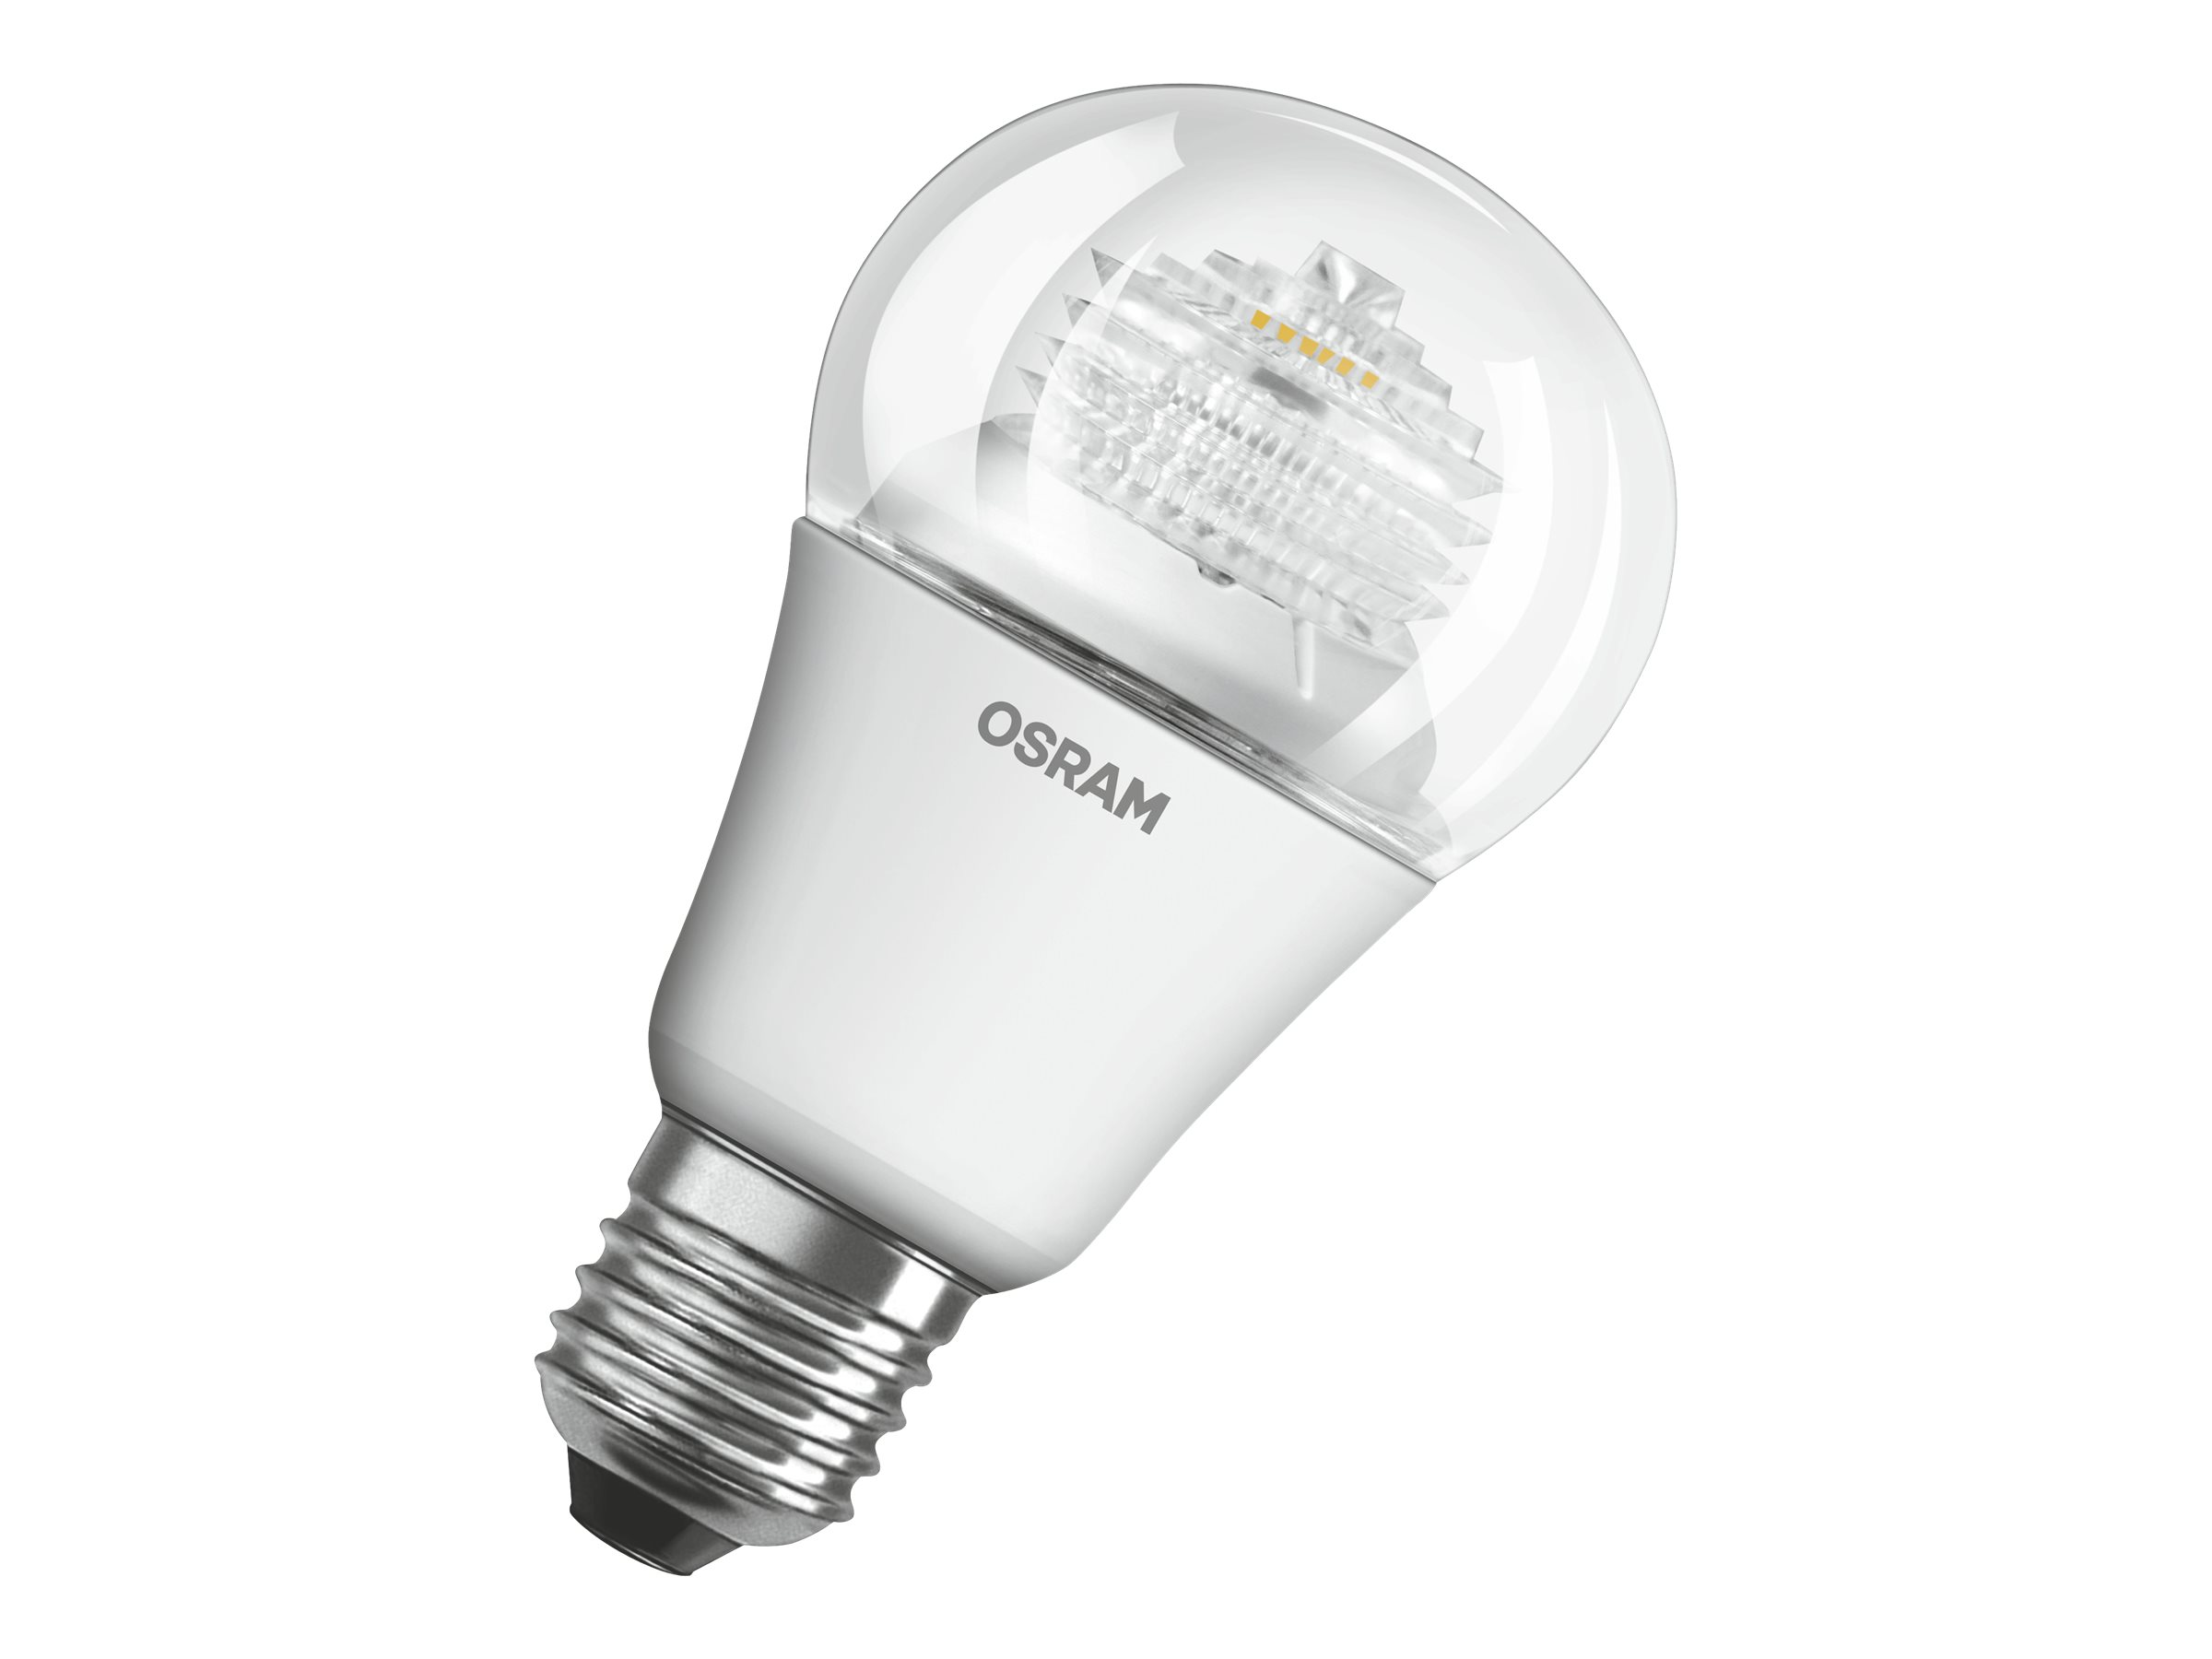 OSRAM PARATHOM advanced CLASSIC A - LED-Glühlampe - Form: A60 - klar Finish - E27 - 10 W (Entsprechung 60 W)